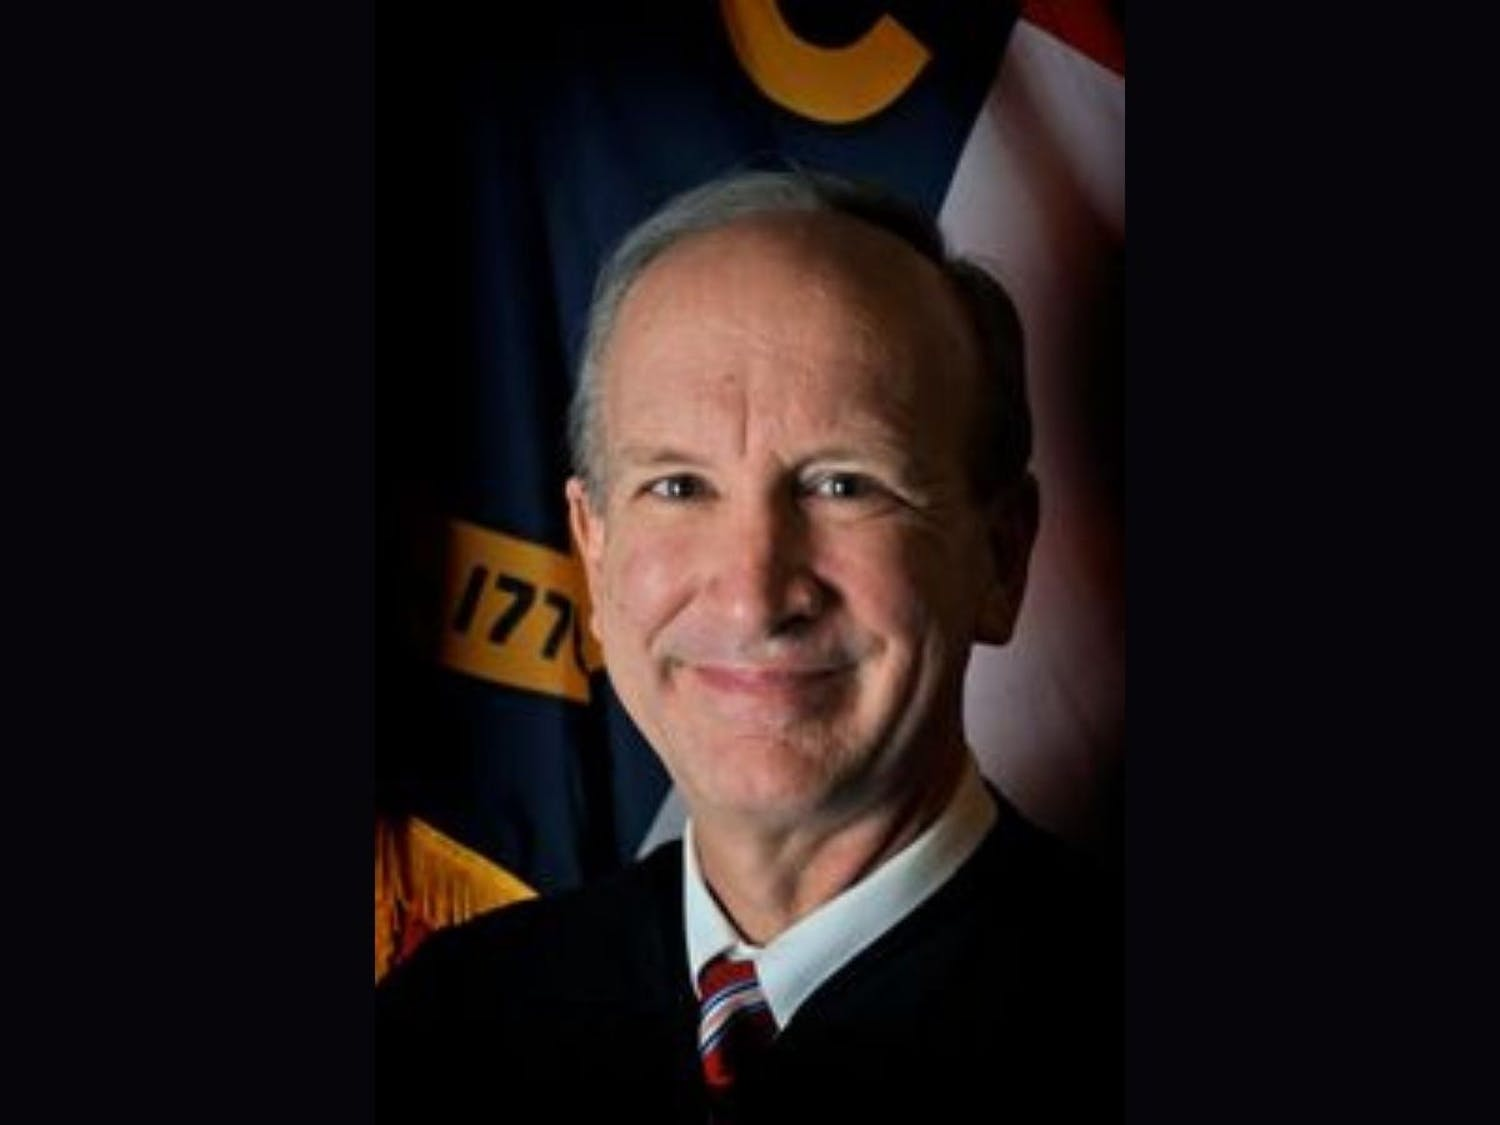 Paul Newby, Trinity '77, was narrowly elected chief justice of the N.C. Supreme Court.